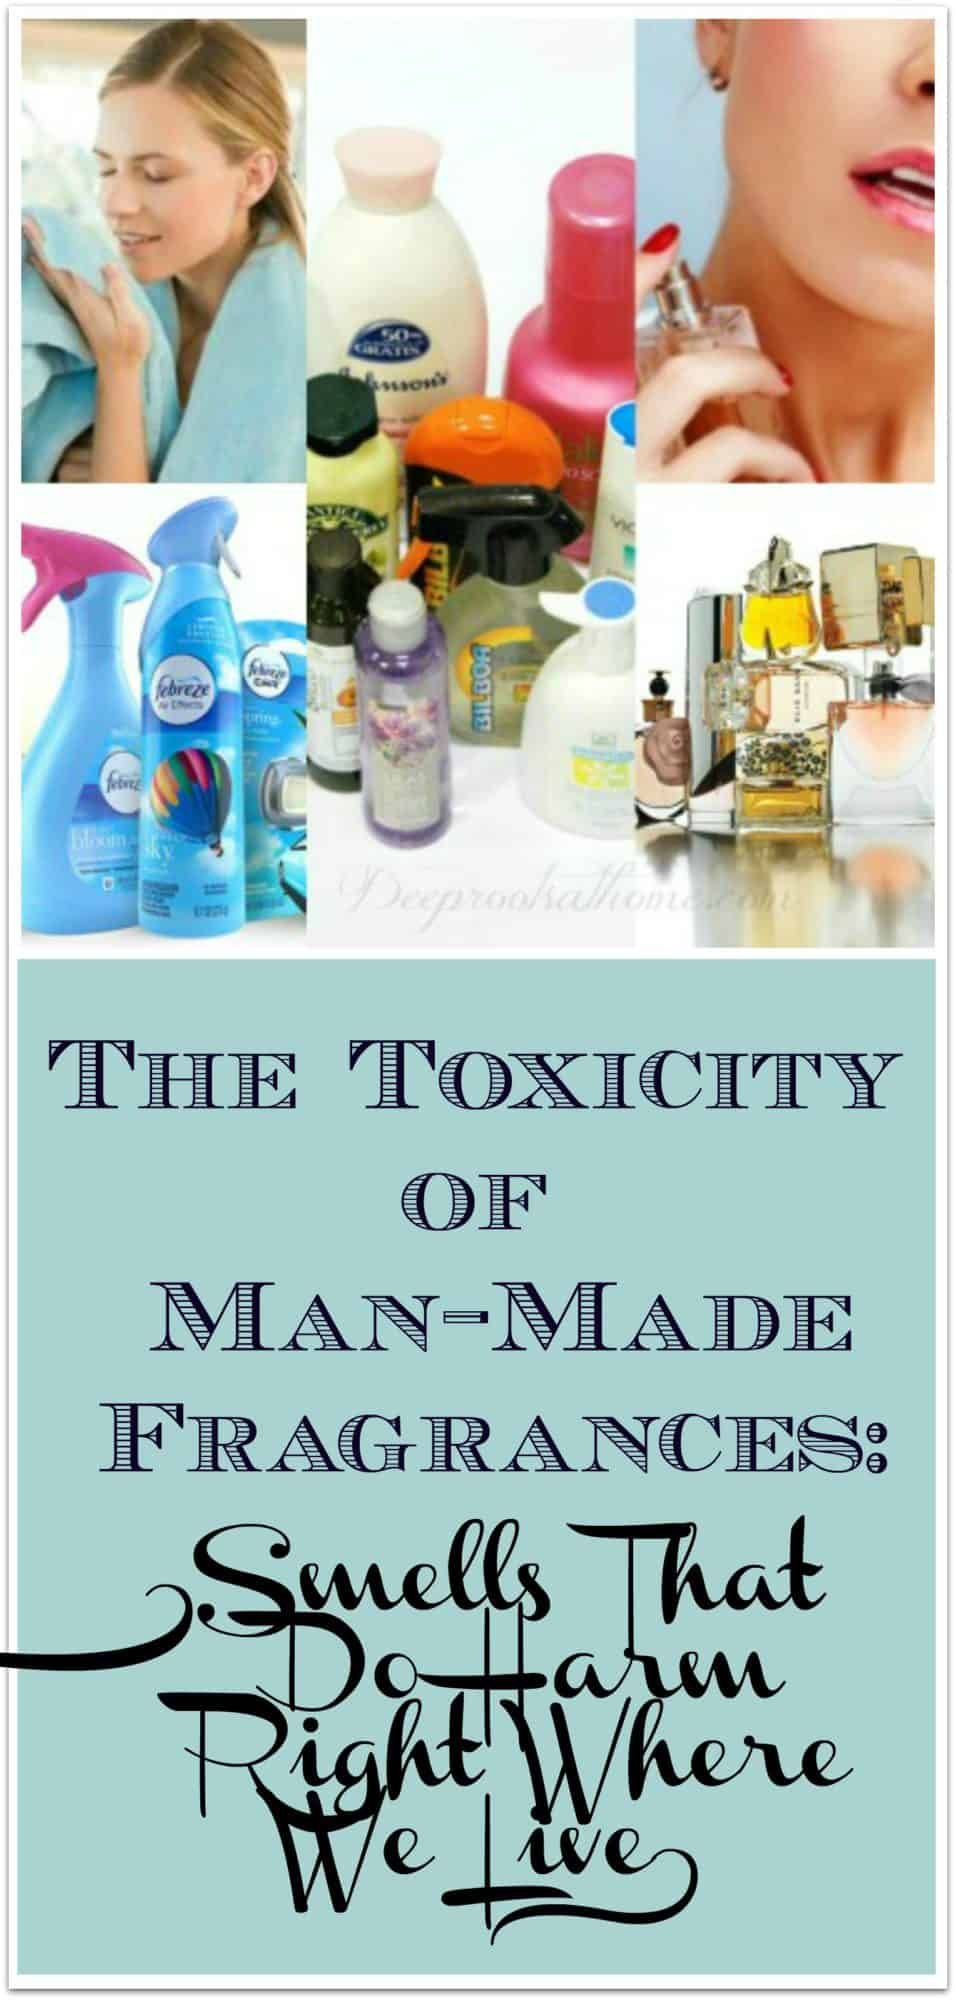 Man-Made Fragrances & The Industry's Secrets: Smells That Make Us Sick, making you sick, sickening, personal care, household products, cancer-promoting chemicals, laundry products, long-term disease, puzzle, fragrant oils, essential oils, power to heal, disease, natural, medicinal, plant species, rare, artificial, man-made, cheap to make, corporations, synthetic fragrances, laboratory-made, air fresheners, colognes, perfumes, household cleaning products, candles, imitation fragrances, derivatives of petroleum, coal tar, smells, imitation, unique fragrances, marketing, signature fragrance, brand loyalty, beautiful packaging, toxicity, VOCs, volatile organic compounds, benzene derivatives, aldehydes, ketones, denaturants, causing cancer, birth defects, central nervous system disorders, allergic reactions, research, quick access to the brain, neurotoxic, carcinogenic, chemists, fabric softener sheets, Bounce, Febreze, scented products, narcotic effcts, hormone-like effects, attract opposite sex, dangerous to health, asthma, Is Your Health Being Destroyed by Toxic Fragrances?, John P. Thomas, book, daily exposure, addiction, benzene, dichlorobenzene, solvent, respiratory distress, sudden heart attack, DDt compounds, bleaching agents, poisoning, sense of smell, cripple immune system, researching mom, headache, respiratory congestion, distress, automobile exhaist, factories, Korean spicebush, butterfly bushes, healing, life-giving, plants, environmental illness, Multiple Chemical Sensitivity, (MCS), impaired sense of smell, low-level anesthetics, halothane, enflurane, and methoxyflurane, bonding glue, methyl-methacrylate, hip replacements, hypersensitive, PubMed, detergent aisle, lawn care aisle, sickening,